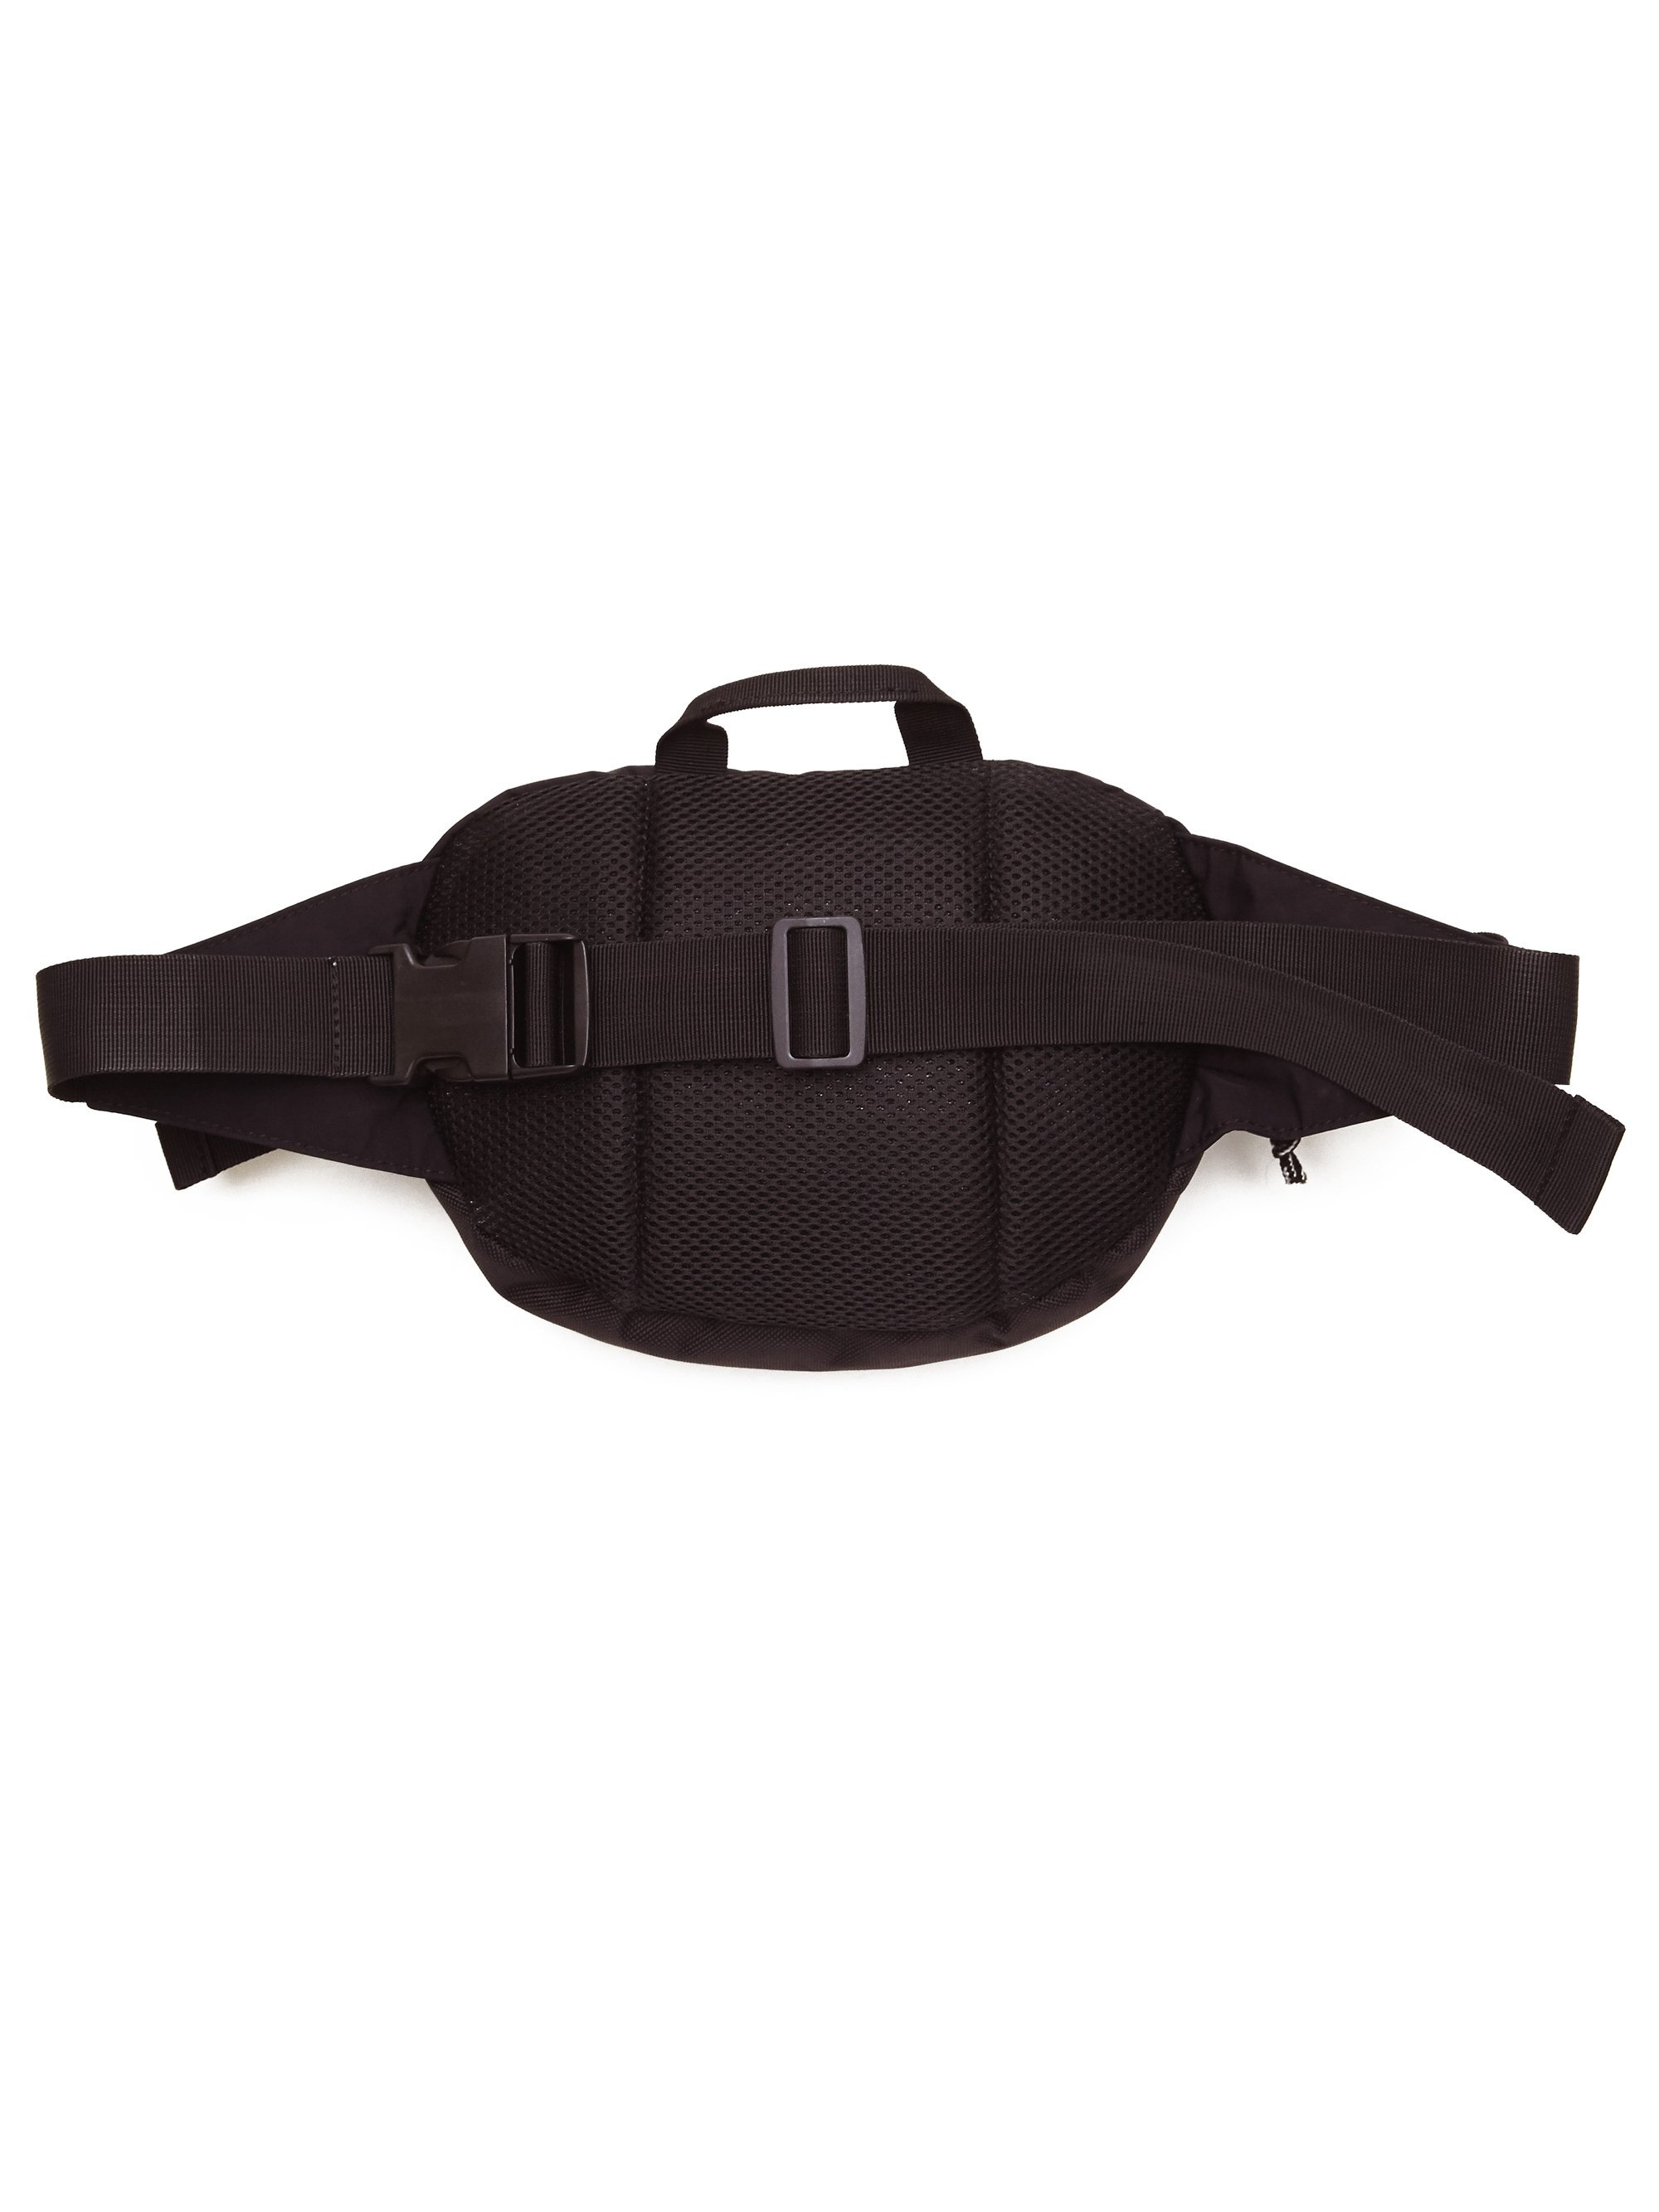 OBEY_Conditions_Waist_Bag_100010108_BLK_2_2000x.jpg